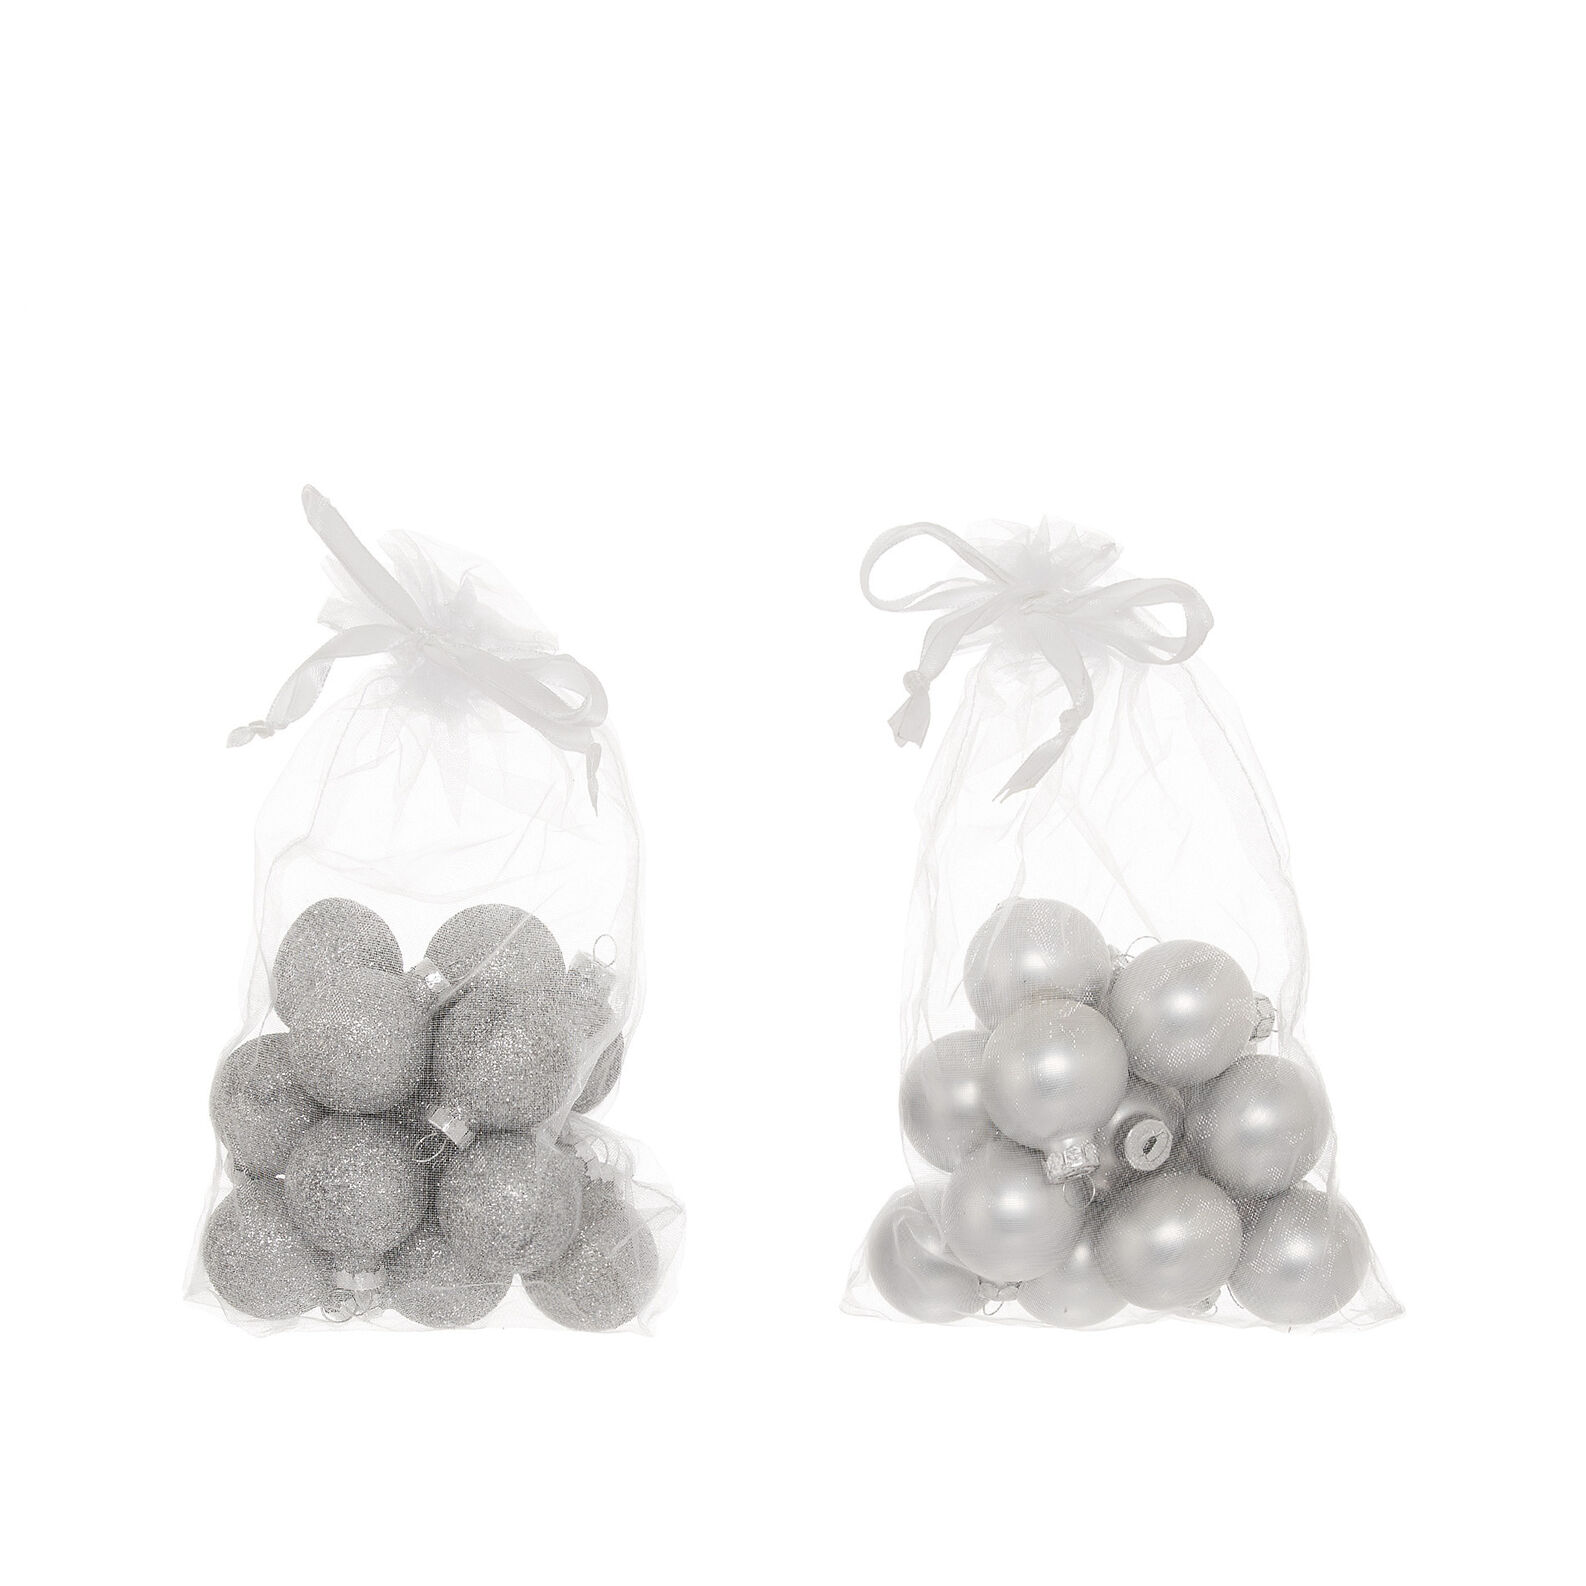 Bag with 15 glass baubles